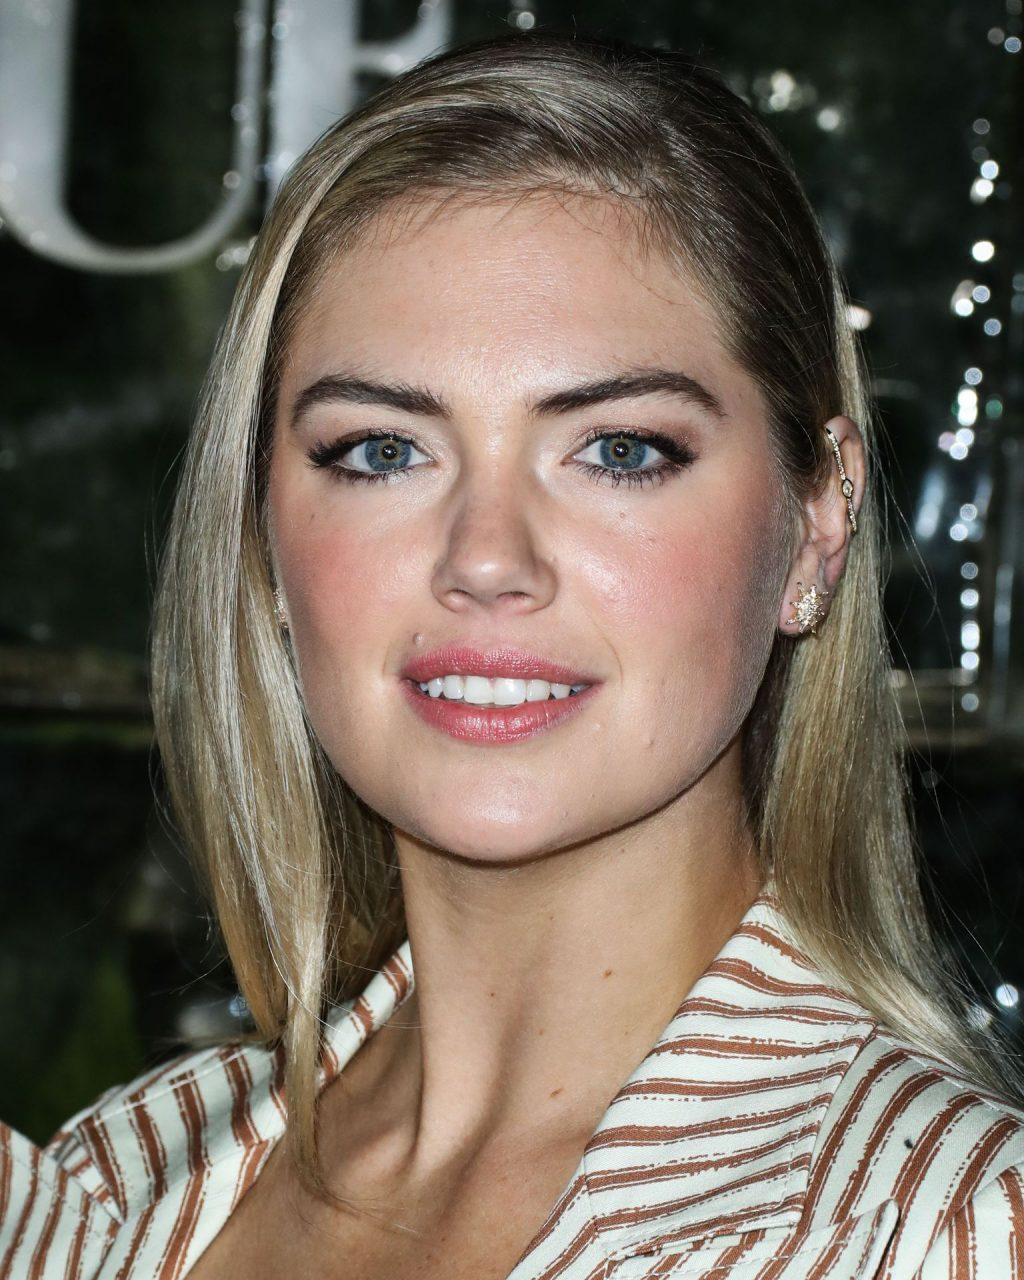 Kate Upton Sexy The Fappening Blog 23 1024x1280 - Kate Upton Attends Canada Goose And Vogue Cocktails & Conversations (104 Photos)